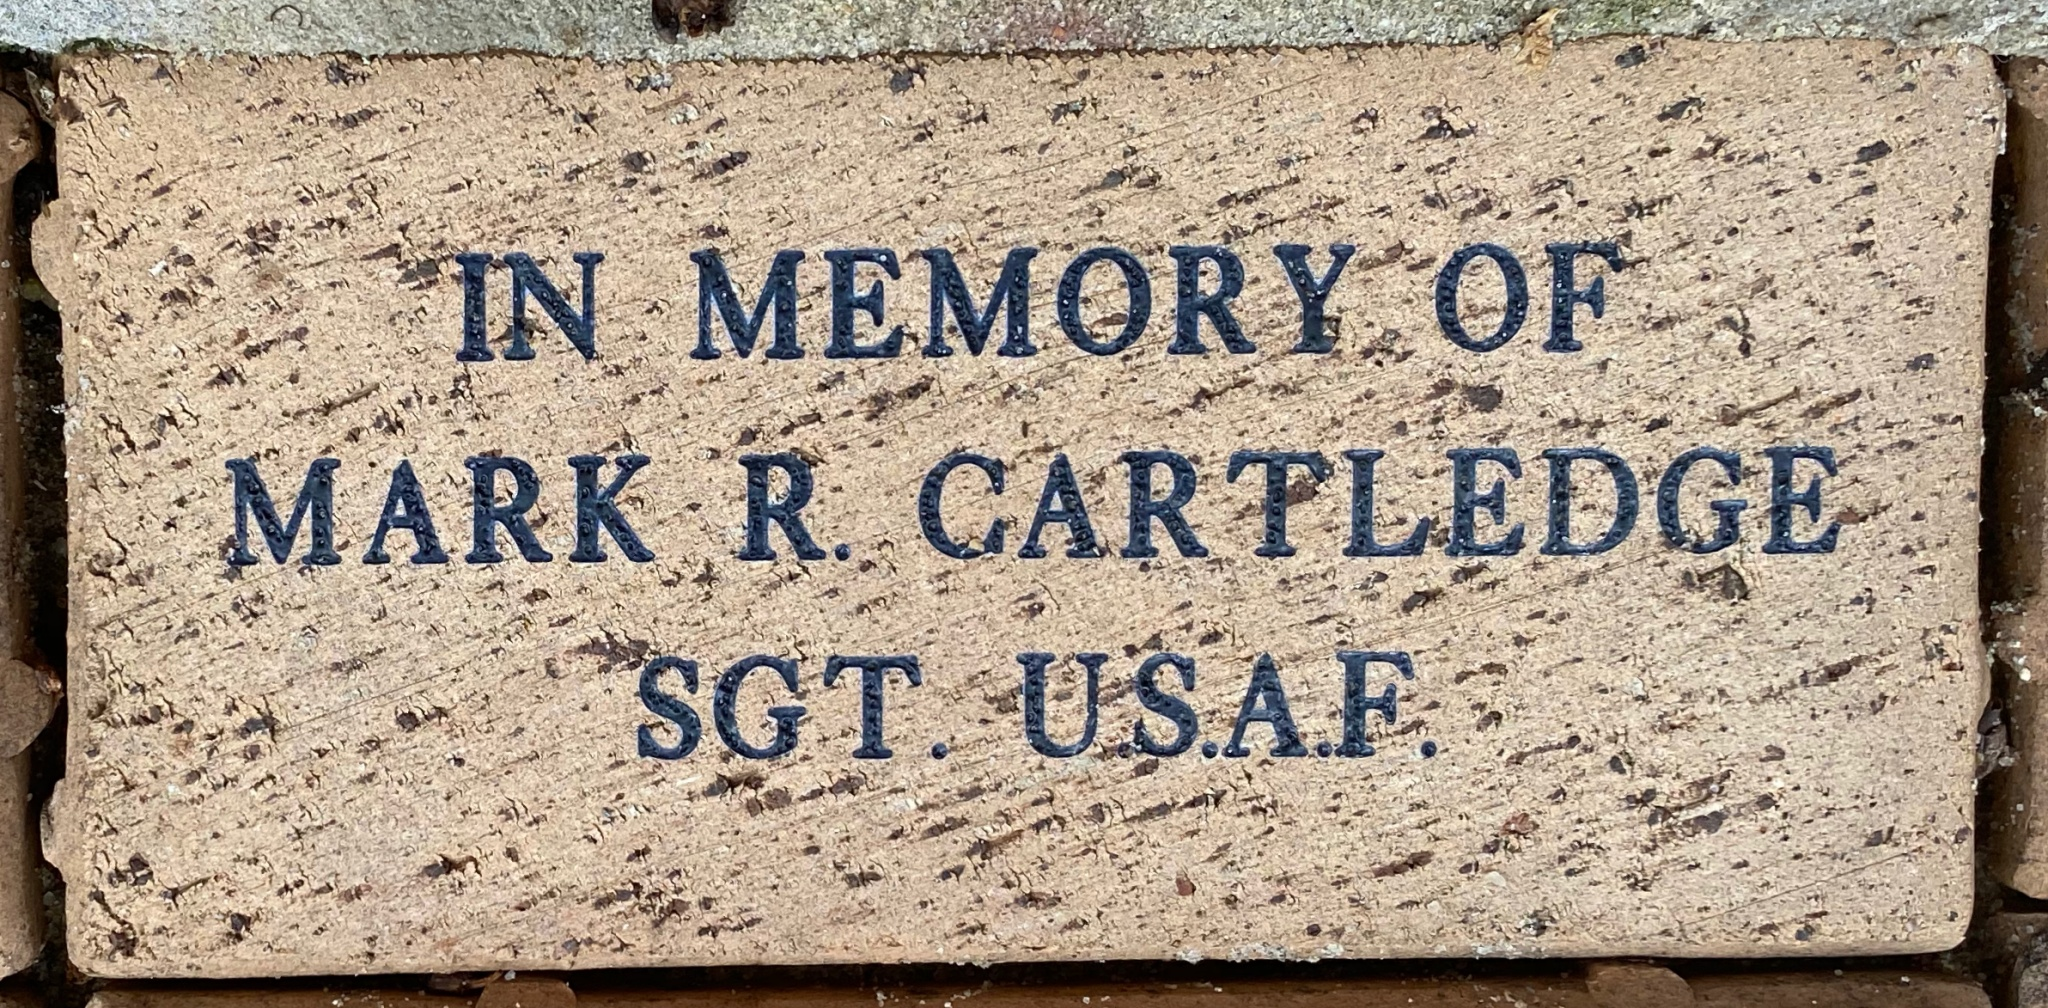 IN MEMORY OF  MARK R. CARTLEDGE SGT. U.S.A.F.